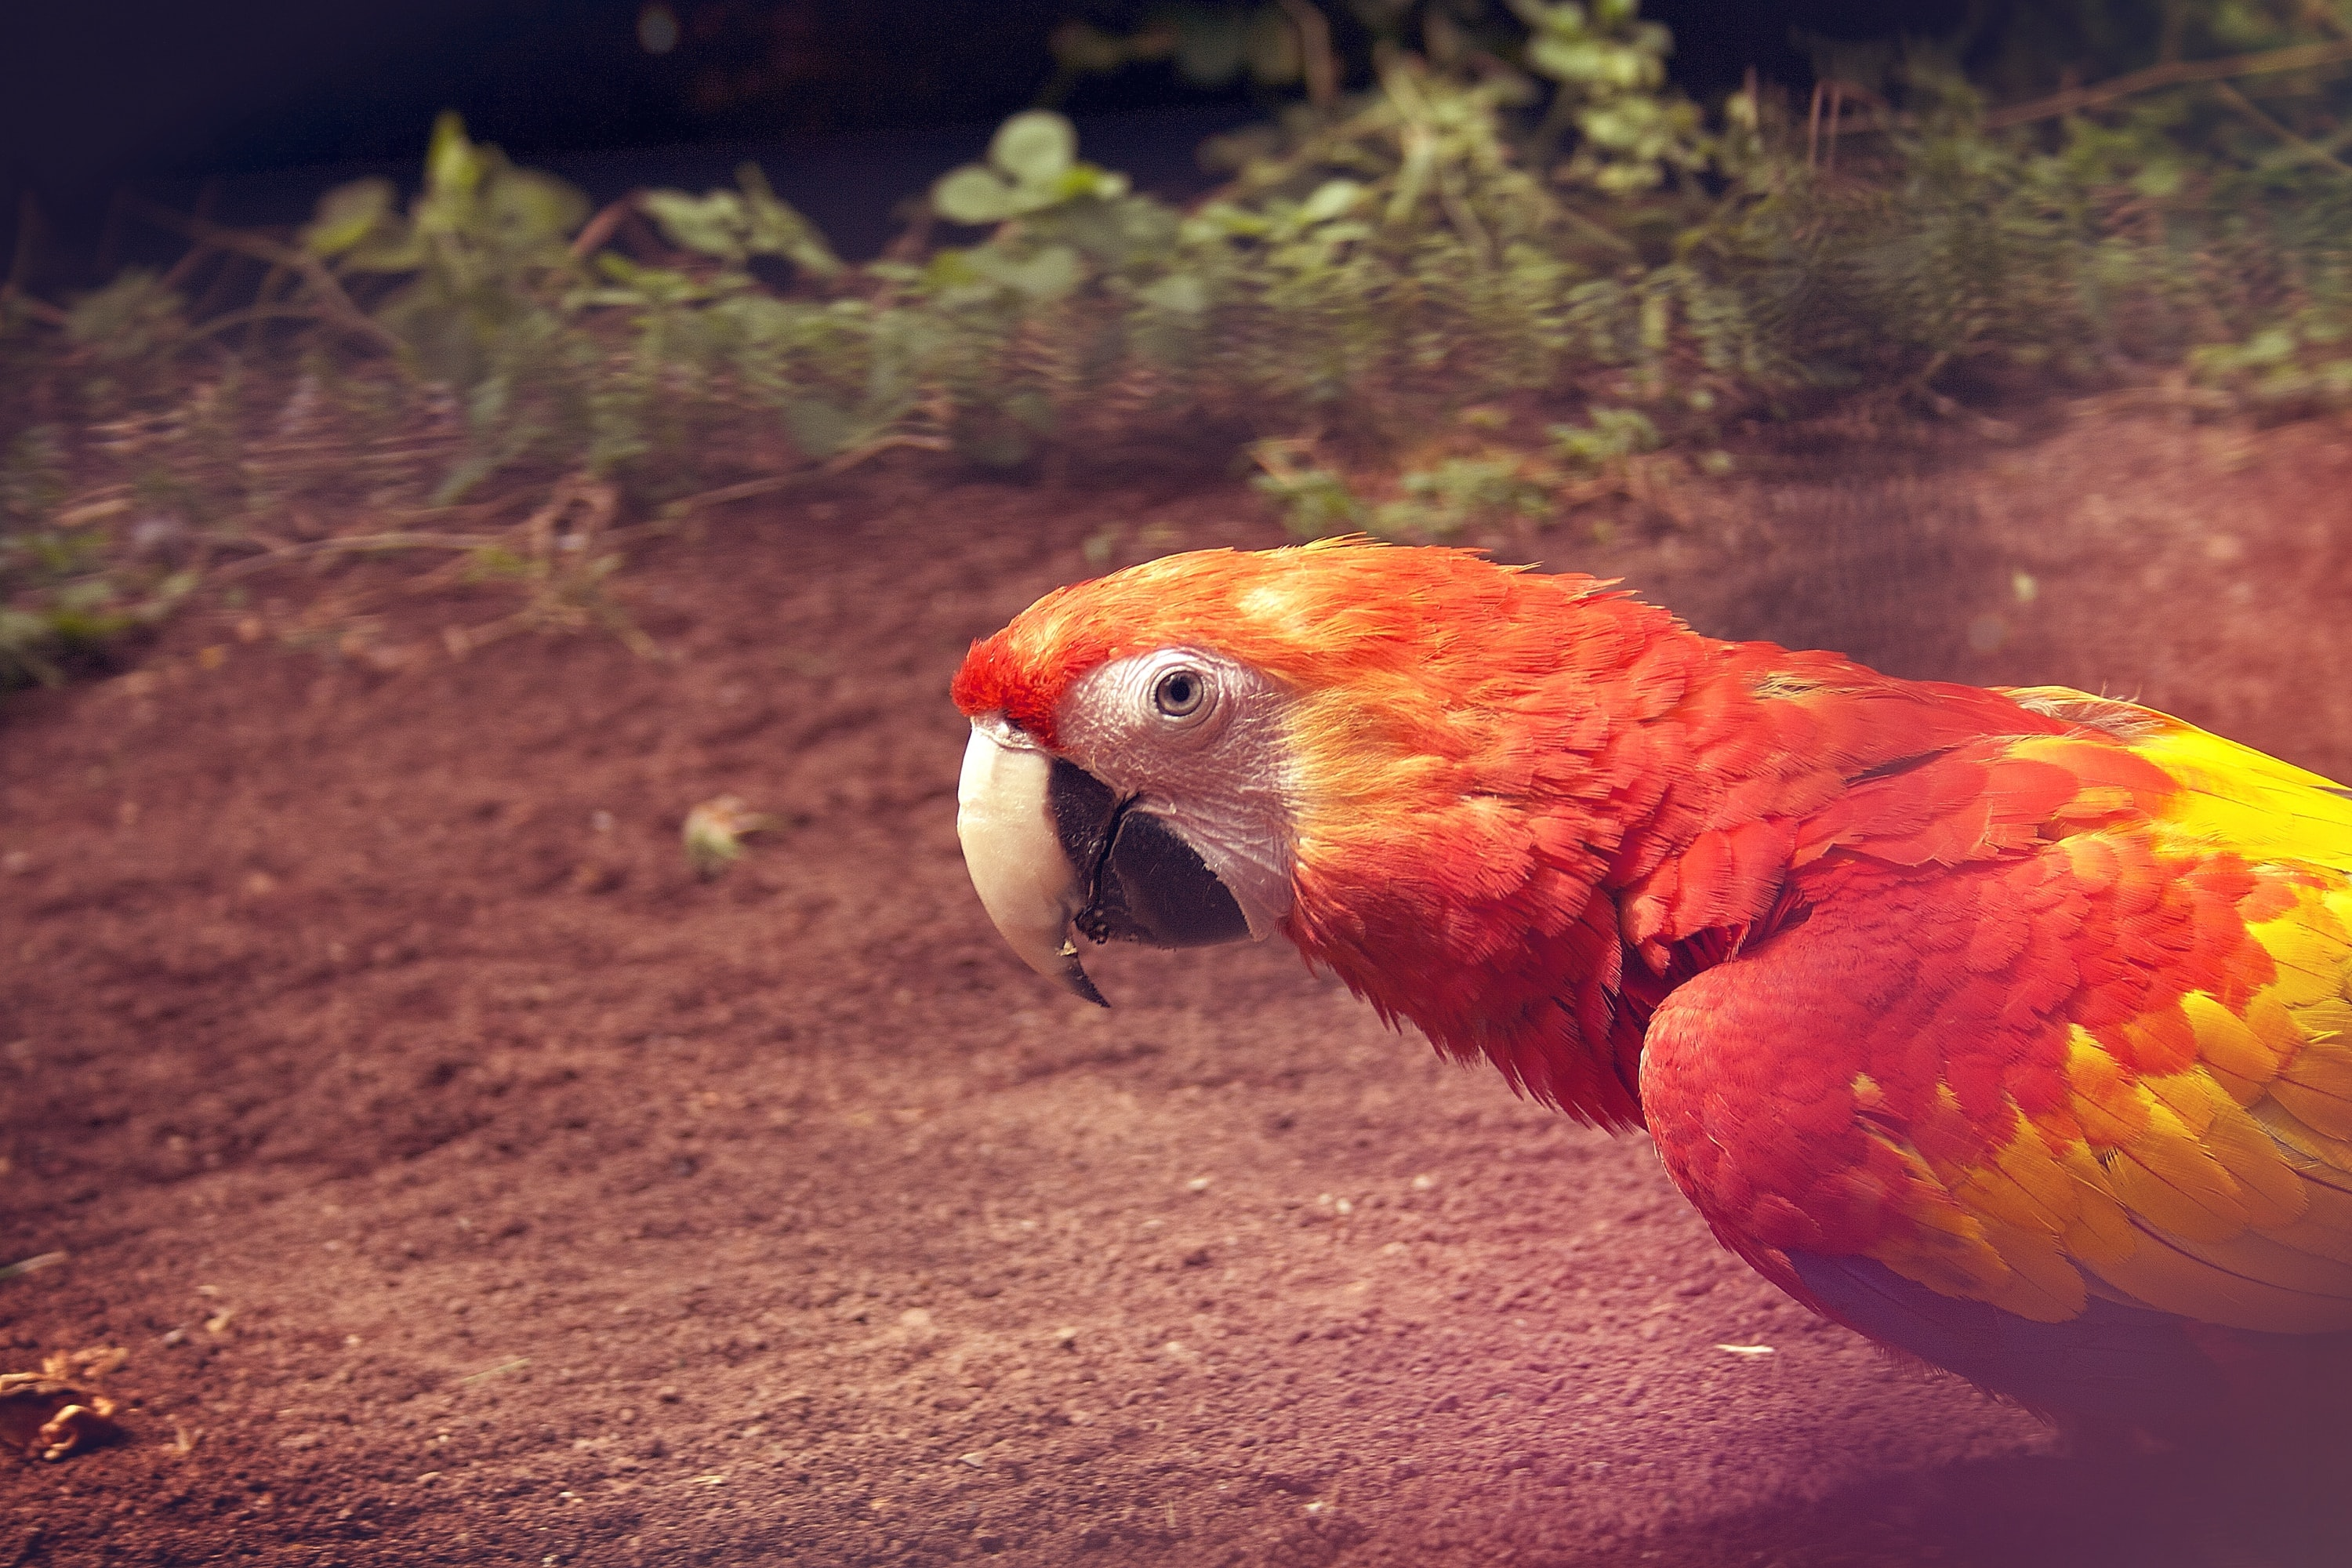 A bright red and yellow parrot on an outdoor scene